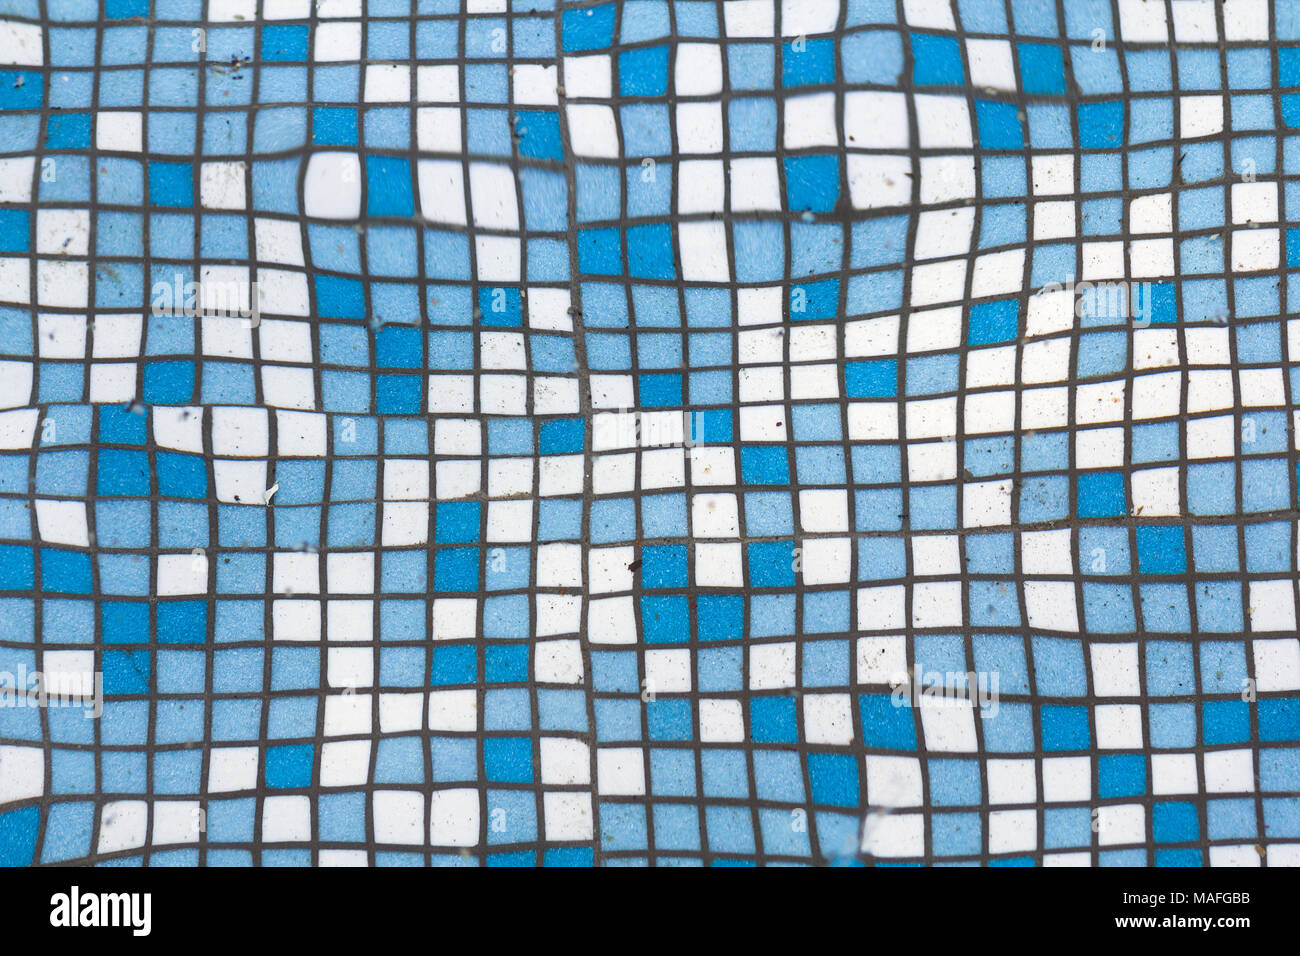 Close up picture of small square blue and white shiny ceramic tiles ...